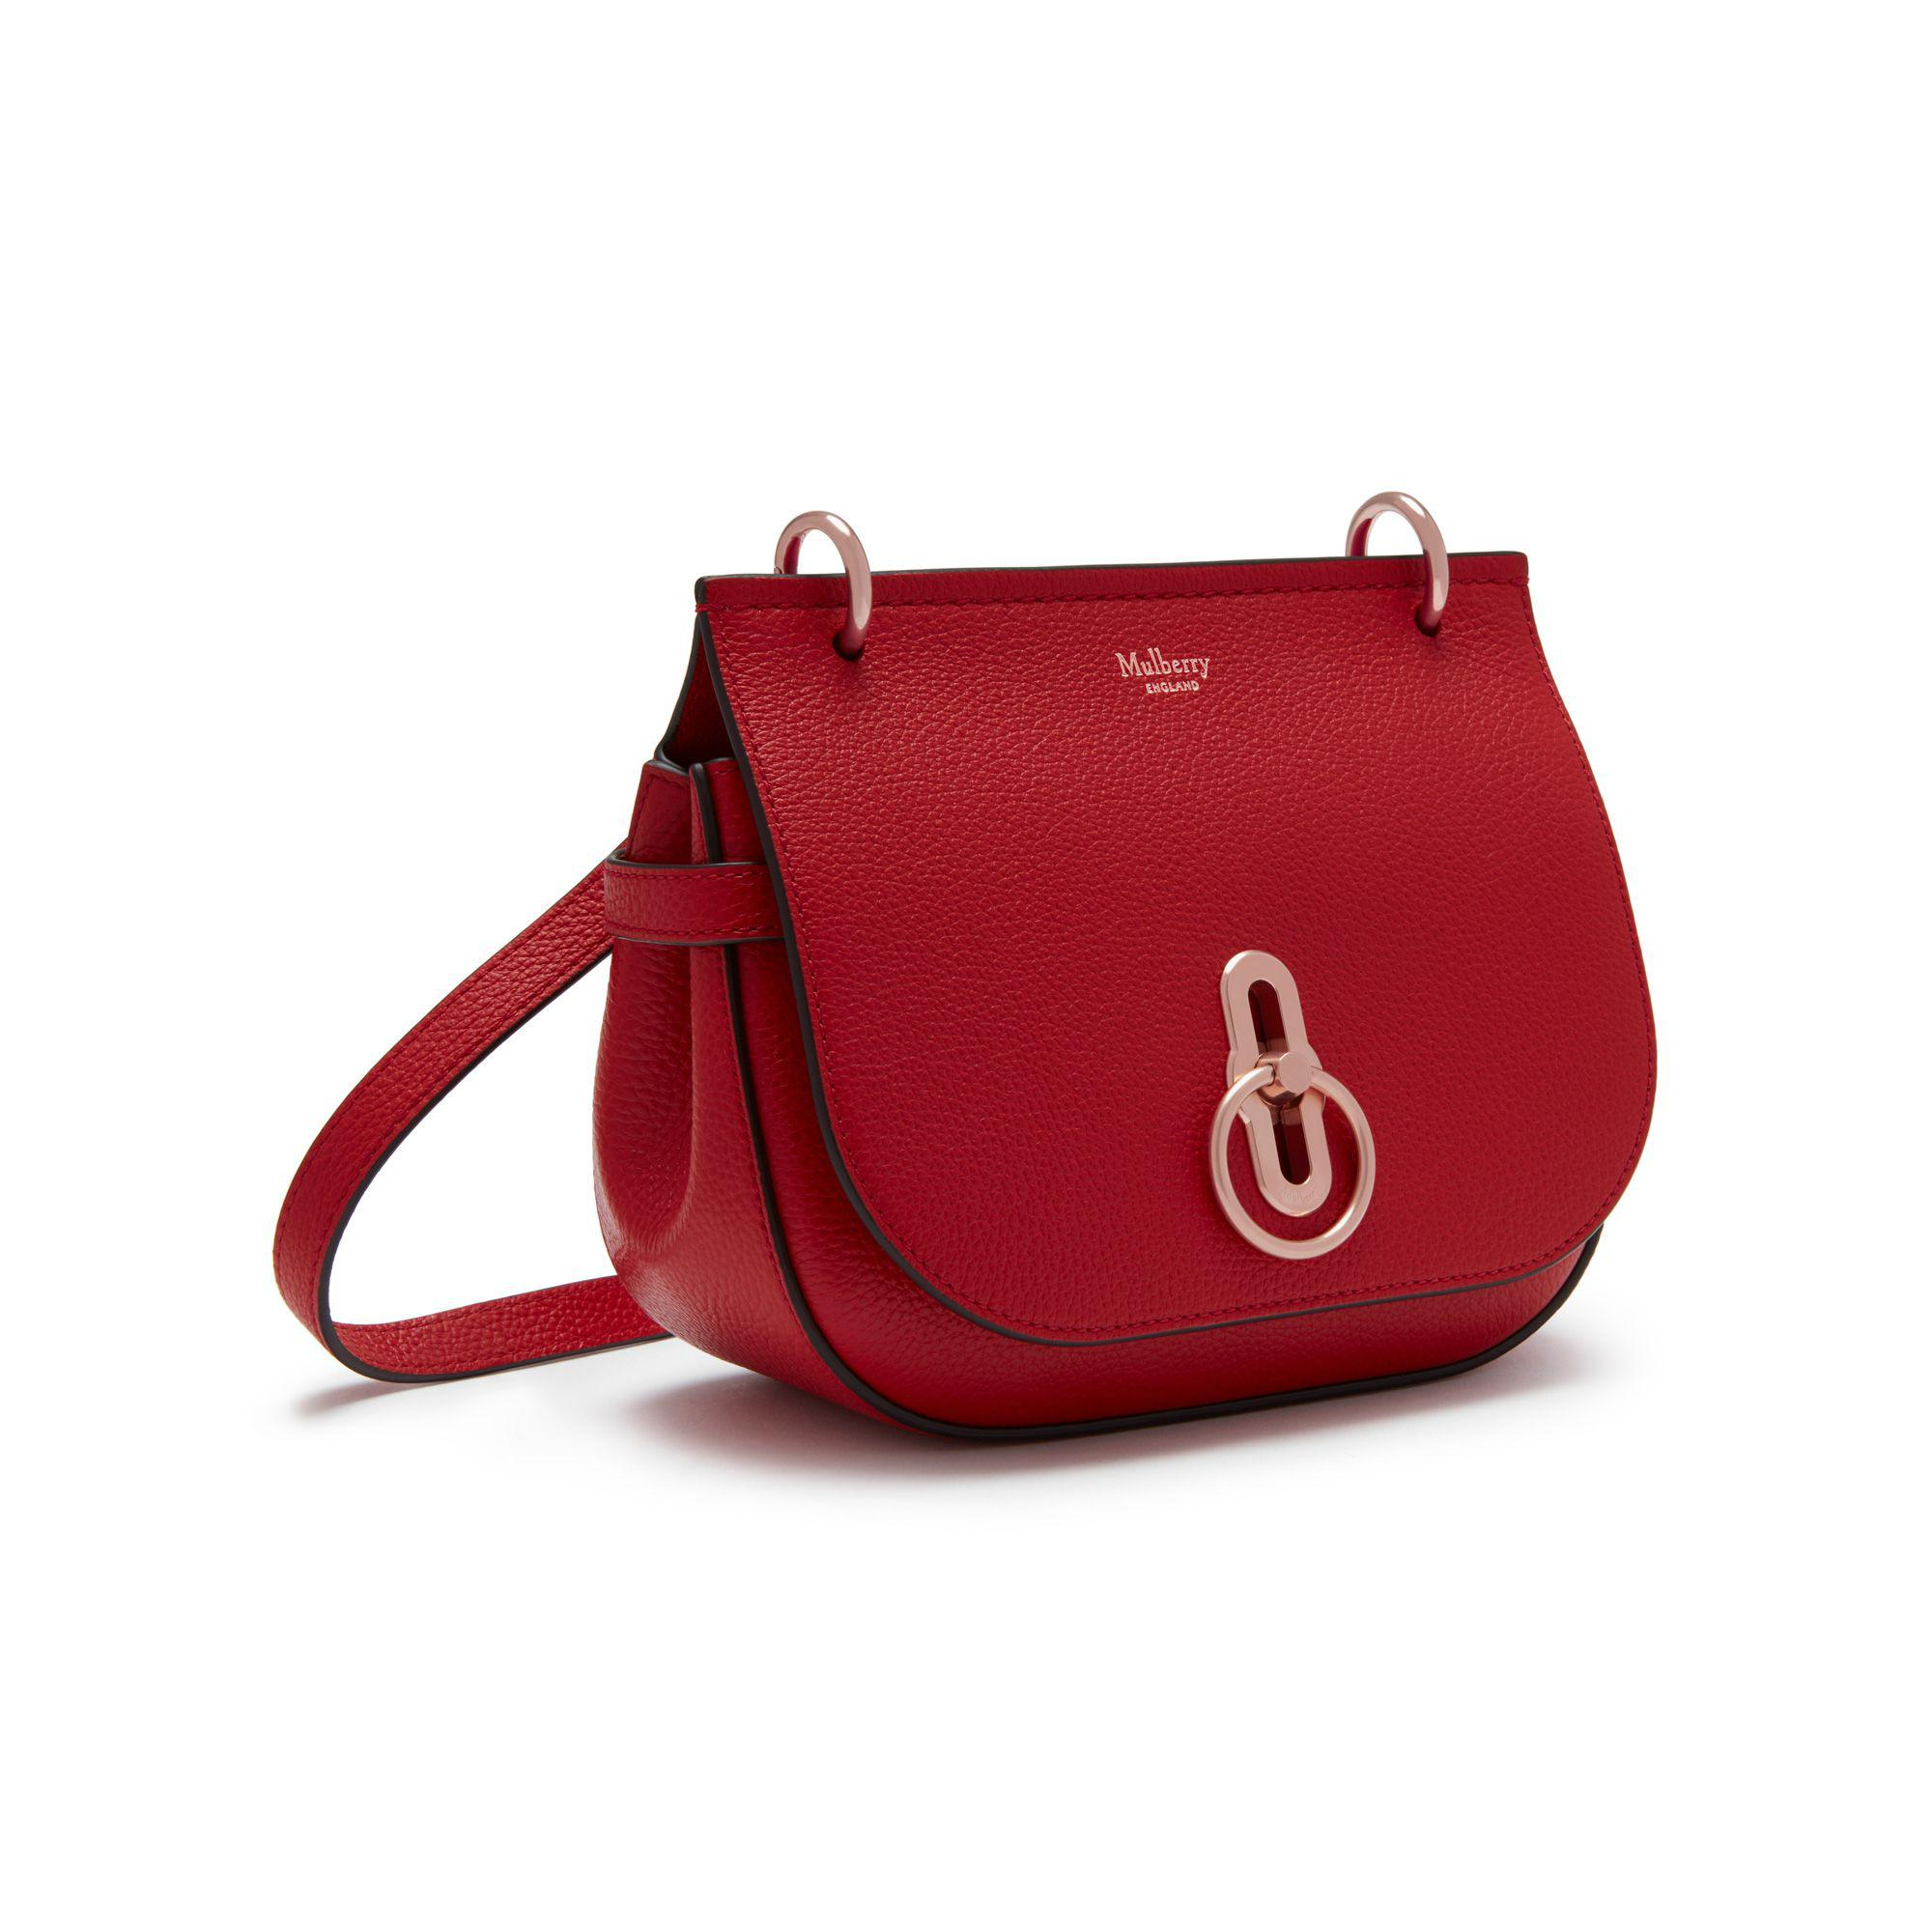 688d03b5e228 ... spain lyst mulberry small amberley satchel in red be41d 84123